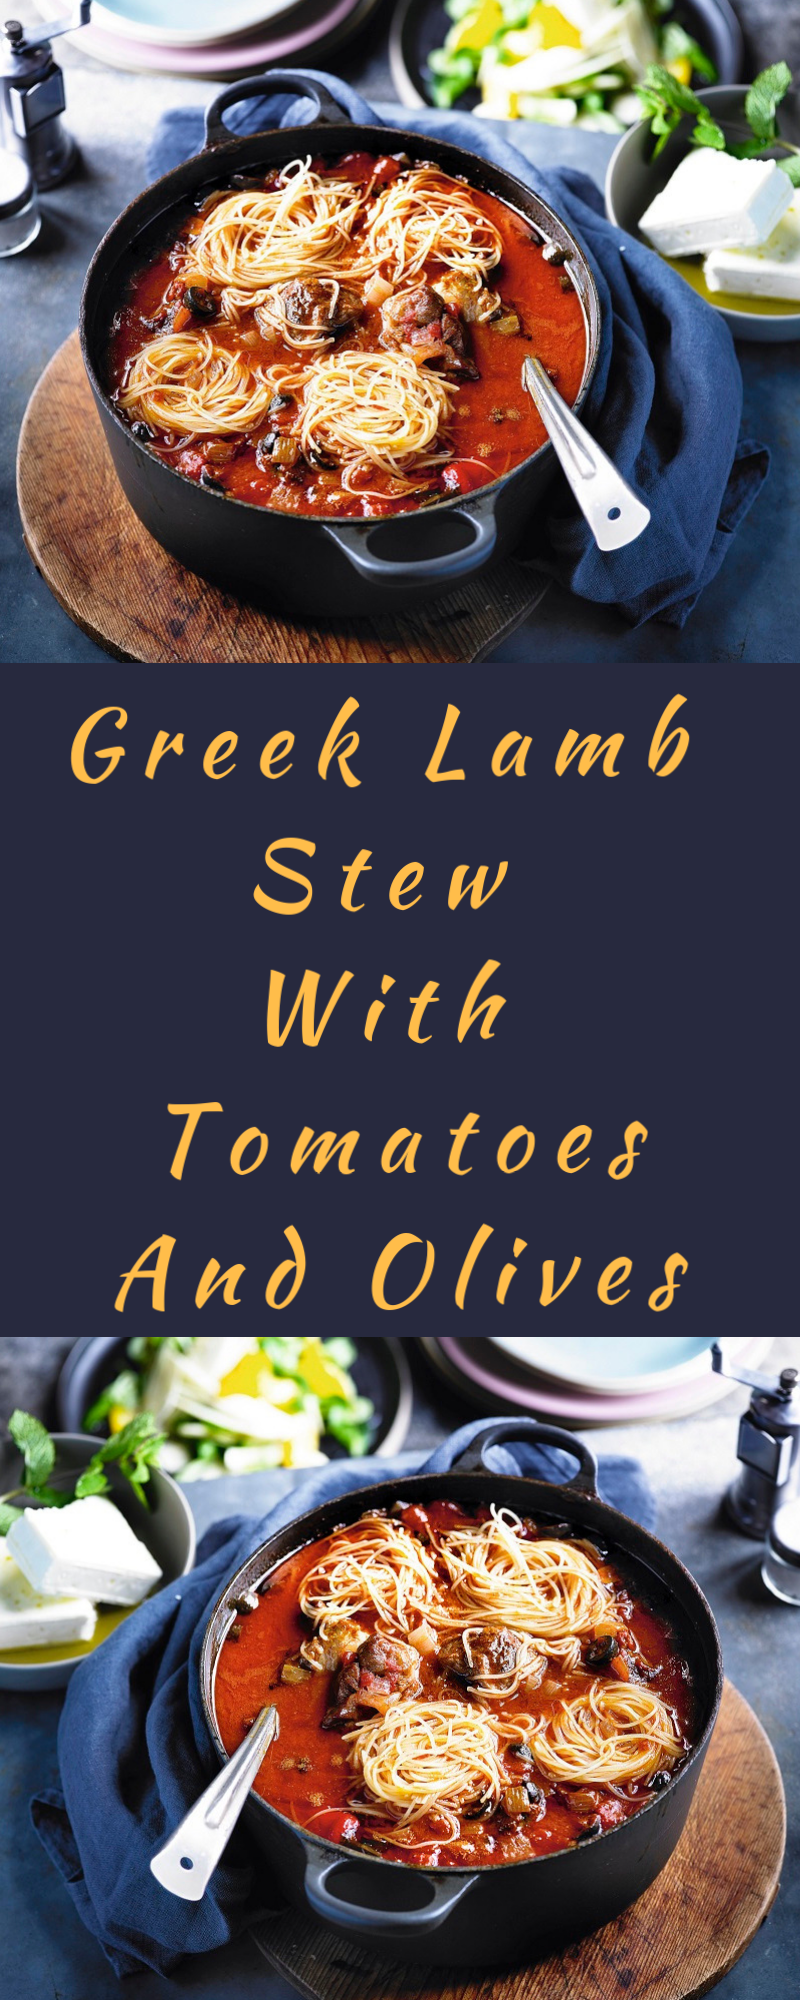 Greek Lamb Stew With Tomatoes And Olives